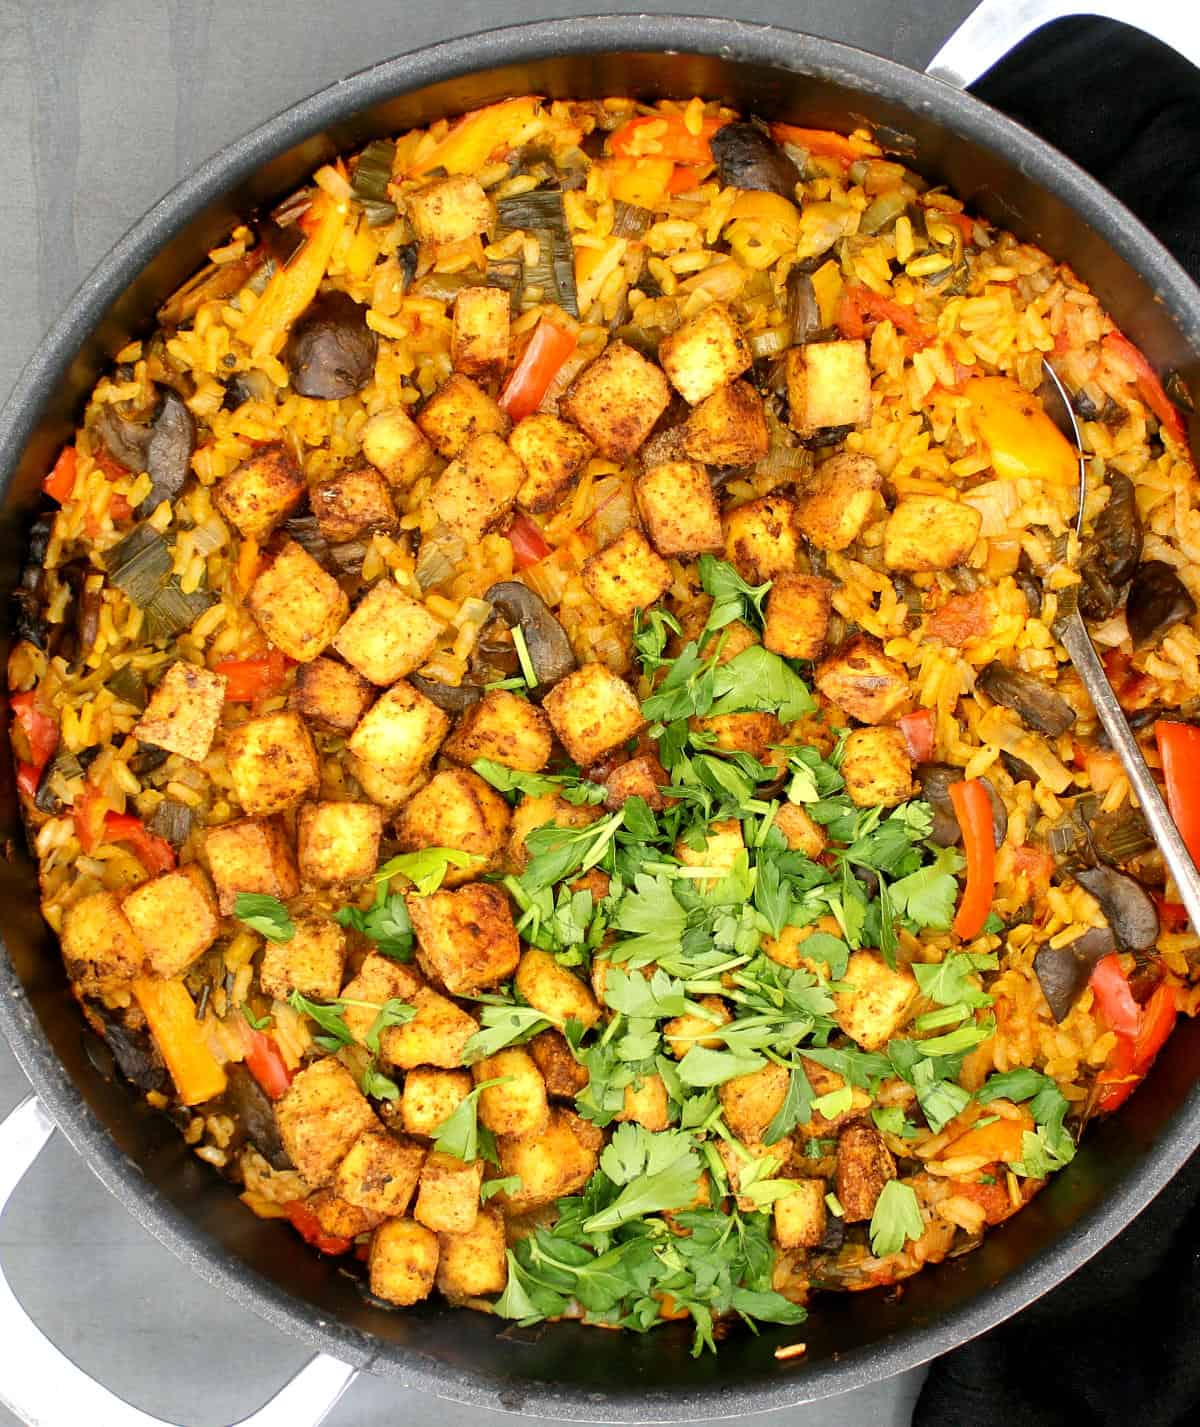 Overhead closeup of a skillet with vegan paella with a spoon in it.